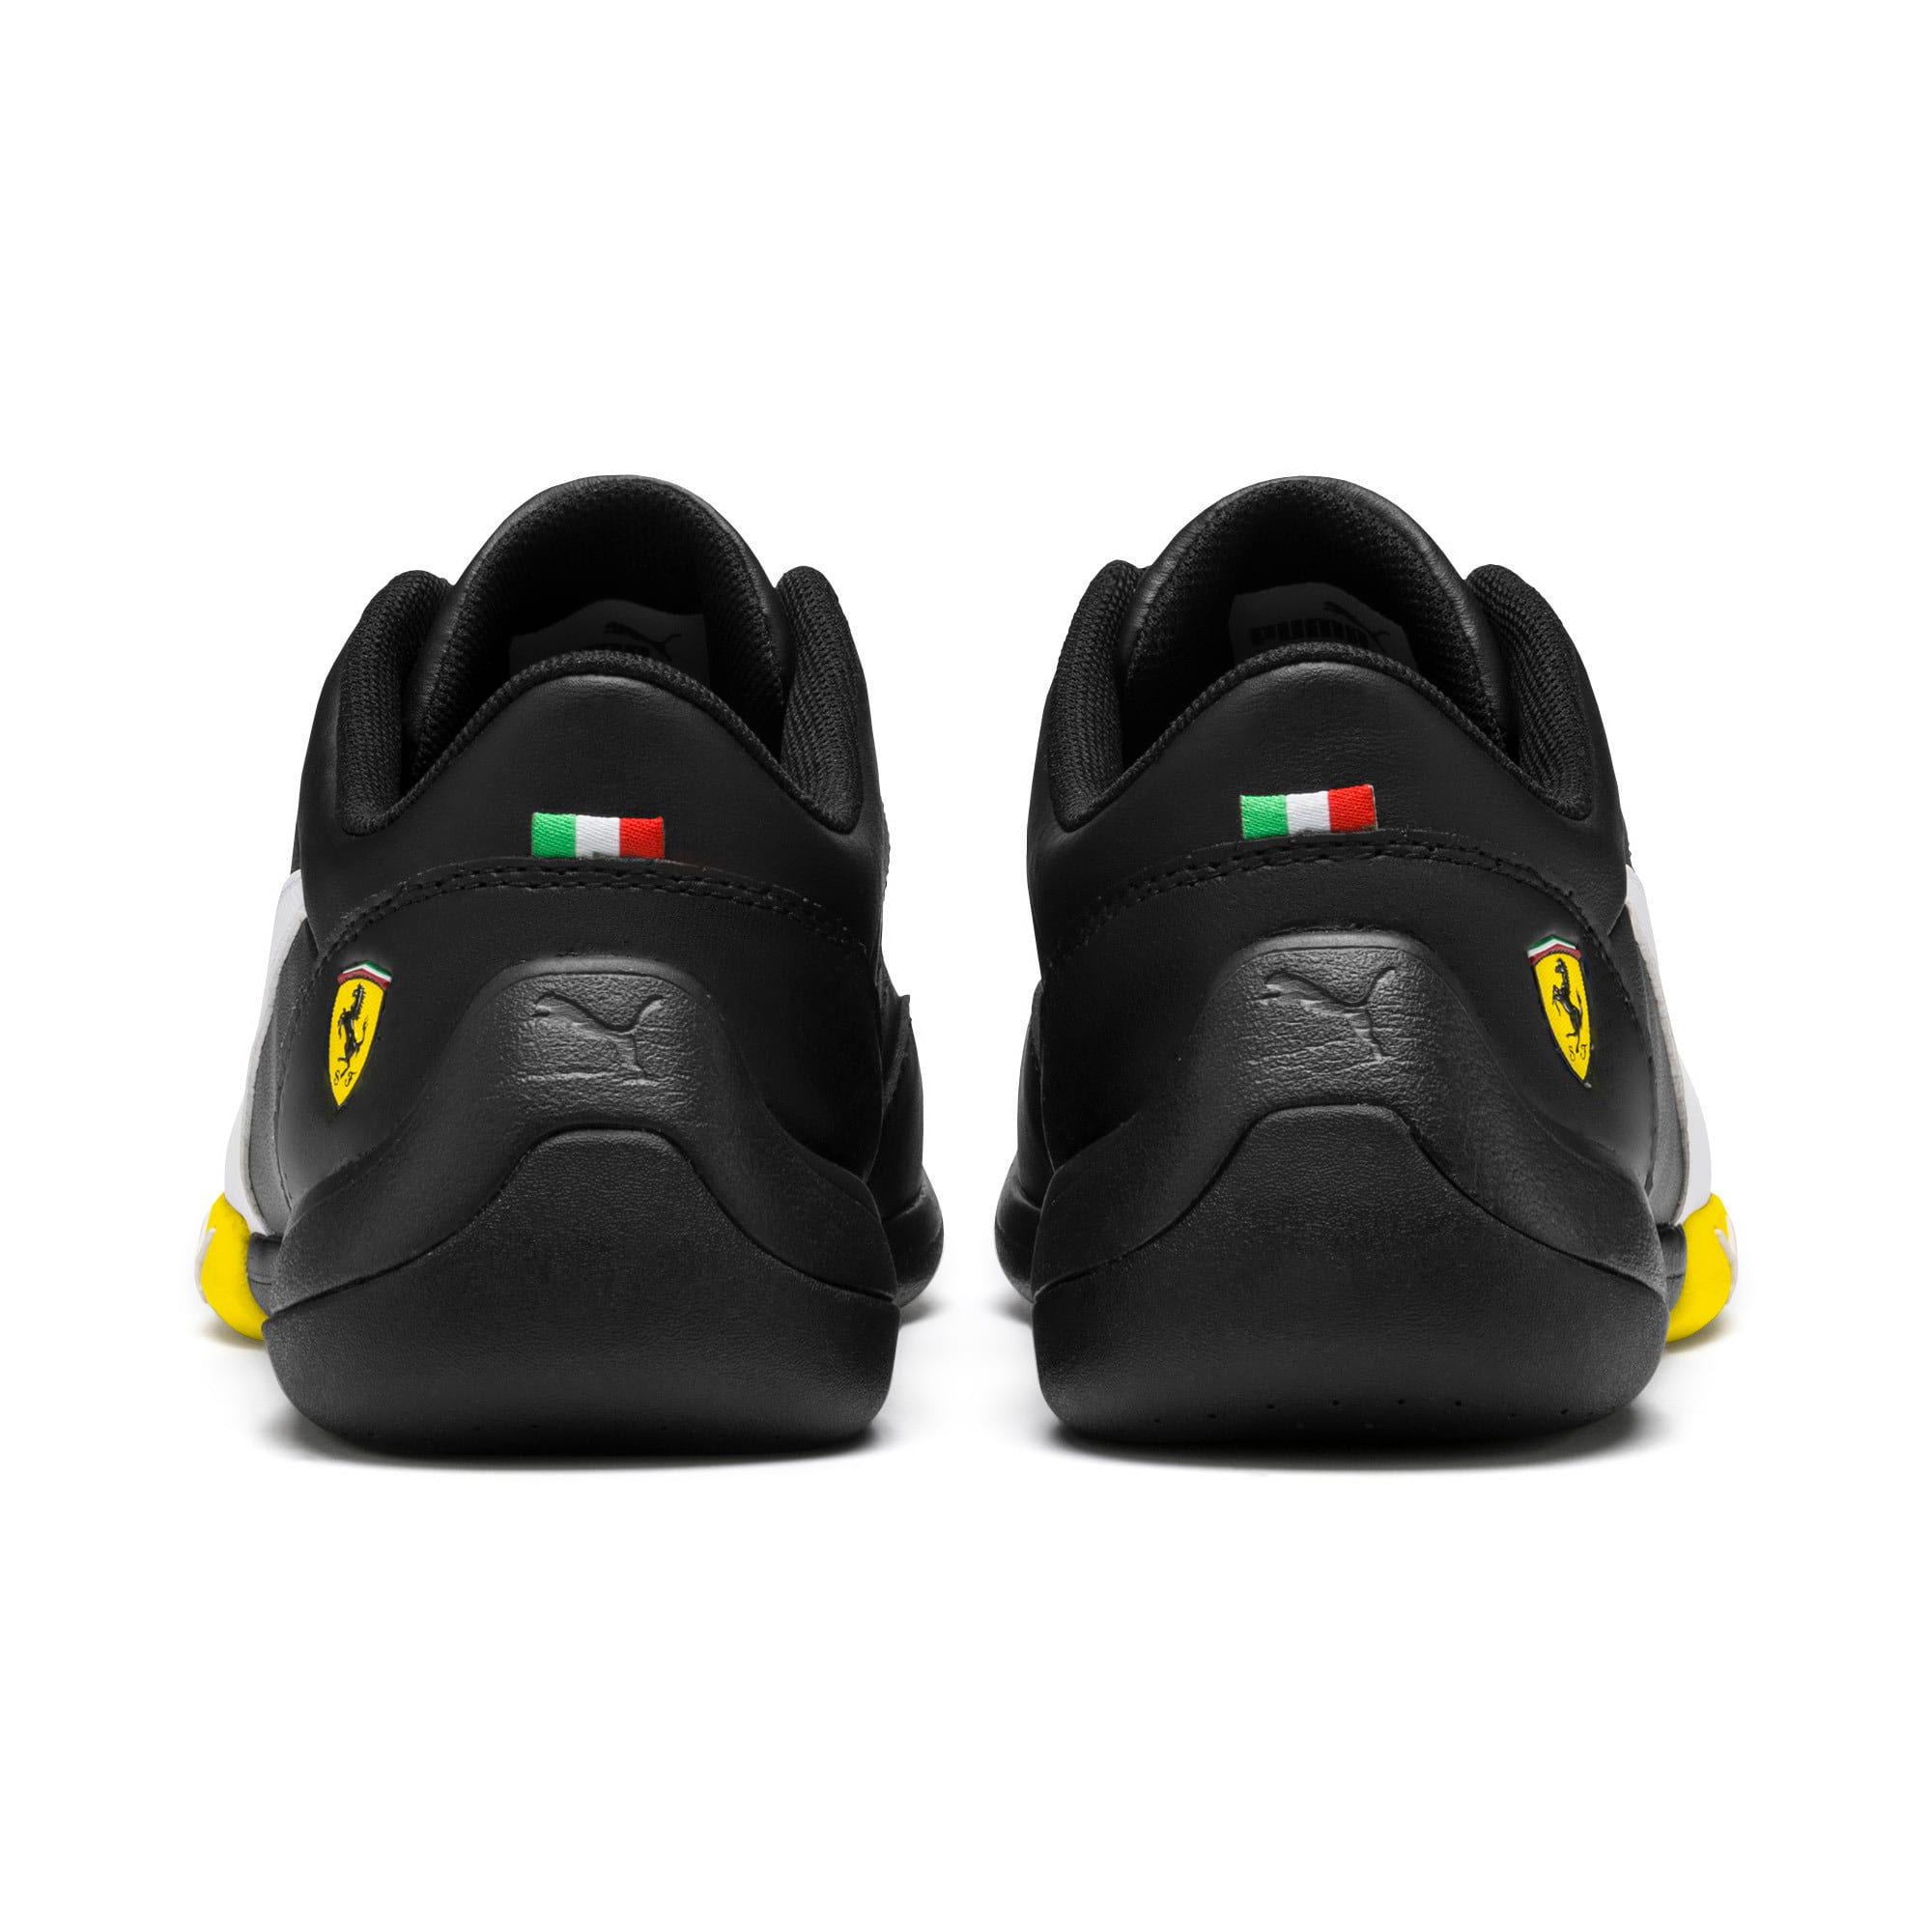 Thumbnail 3 of Ferrari Kart Cat III Youth Trainers, Black-White-Blazing Yellow, medium-IND